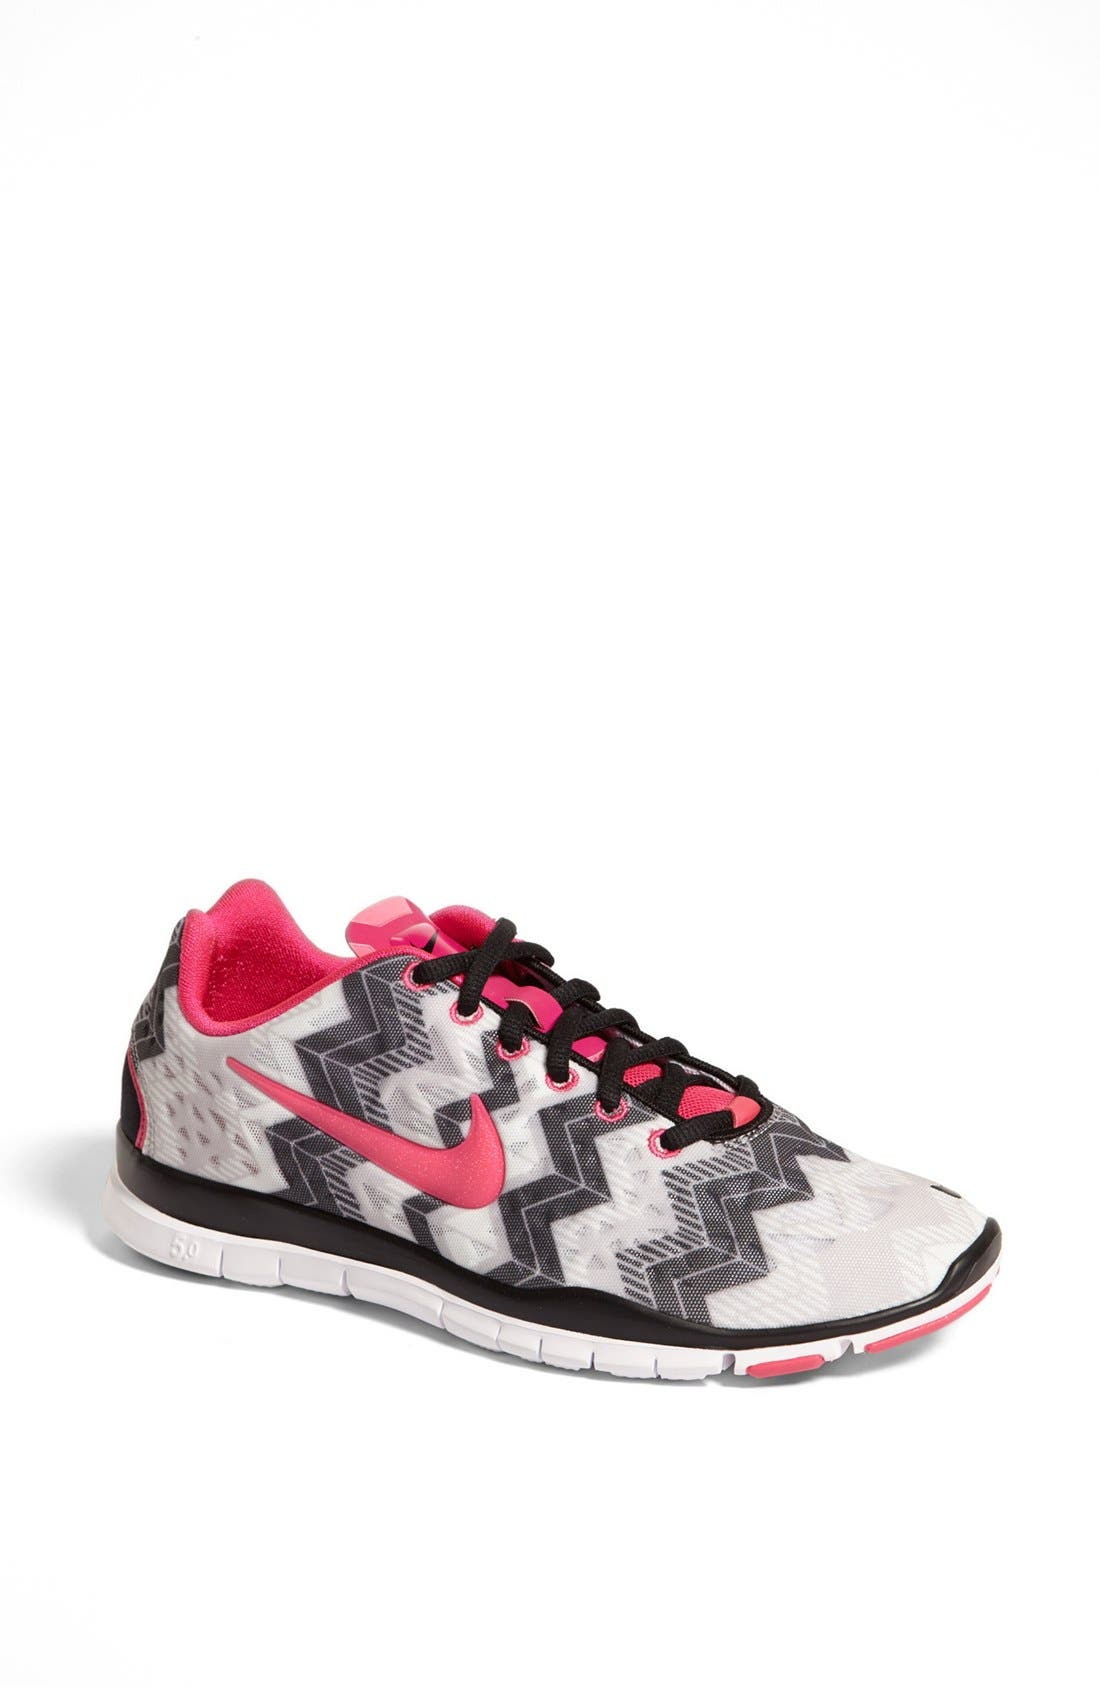 Alternate Image 1 Selected - Nike 'Free TR Fit 3 Print' Training Shoe (Women)